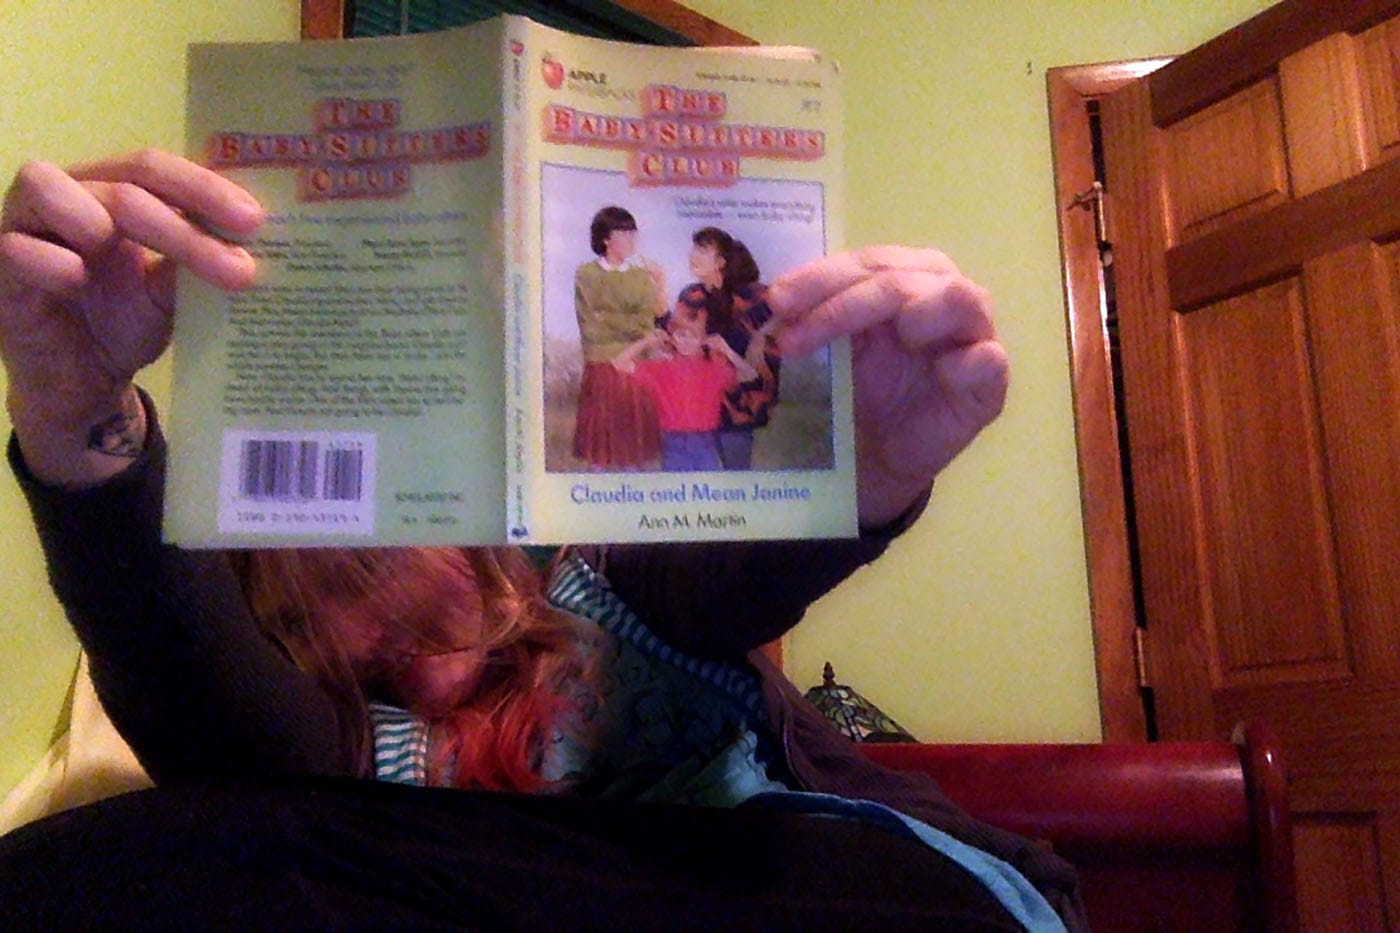 Baby-Sitters Club 7 - Claudia and Mean Janine